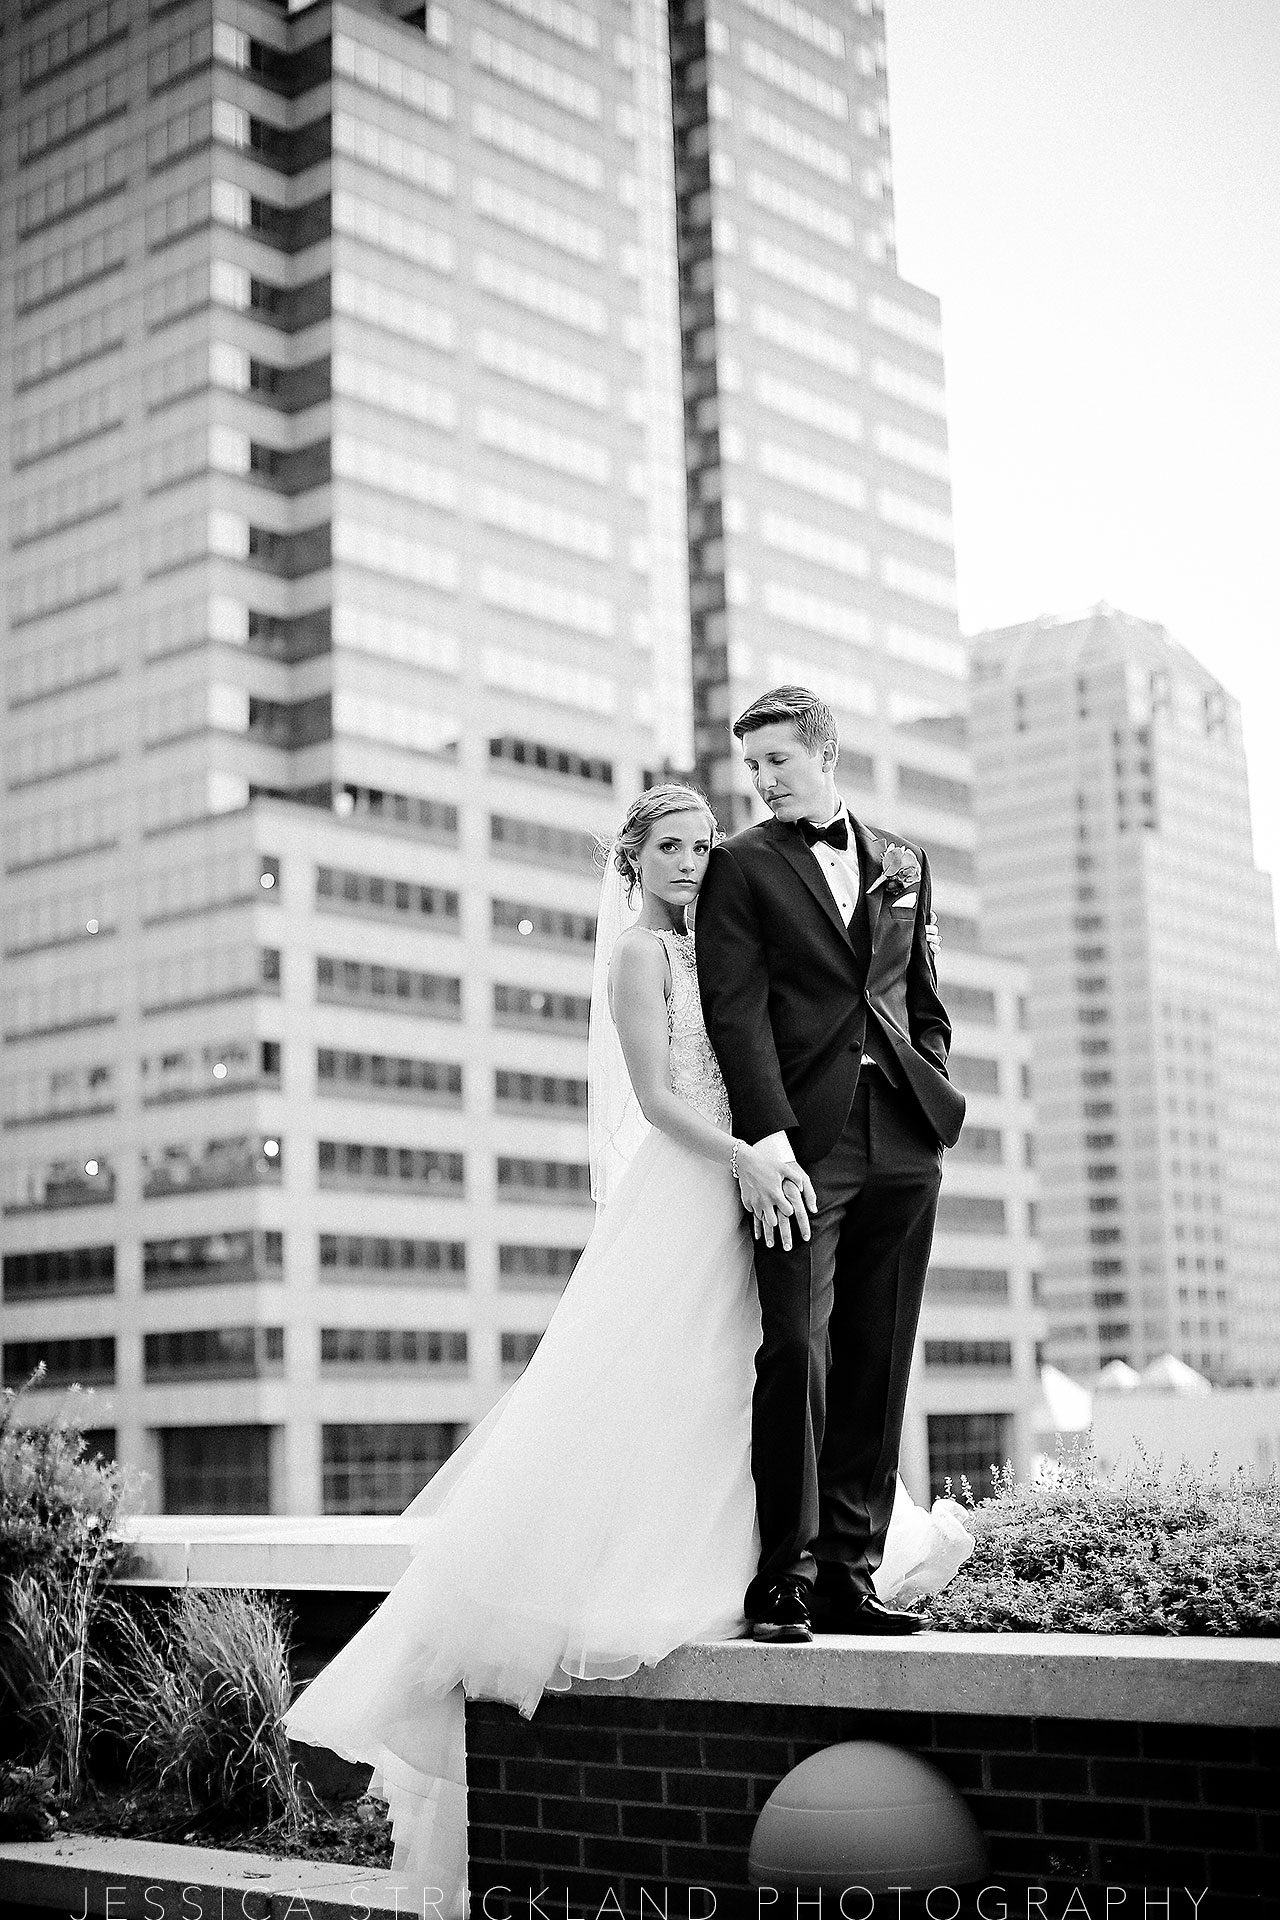 Serra Alex Regions Tower Indianapolis Wedding 228 watermarked